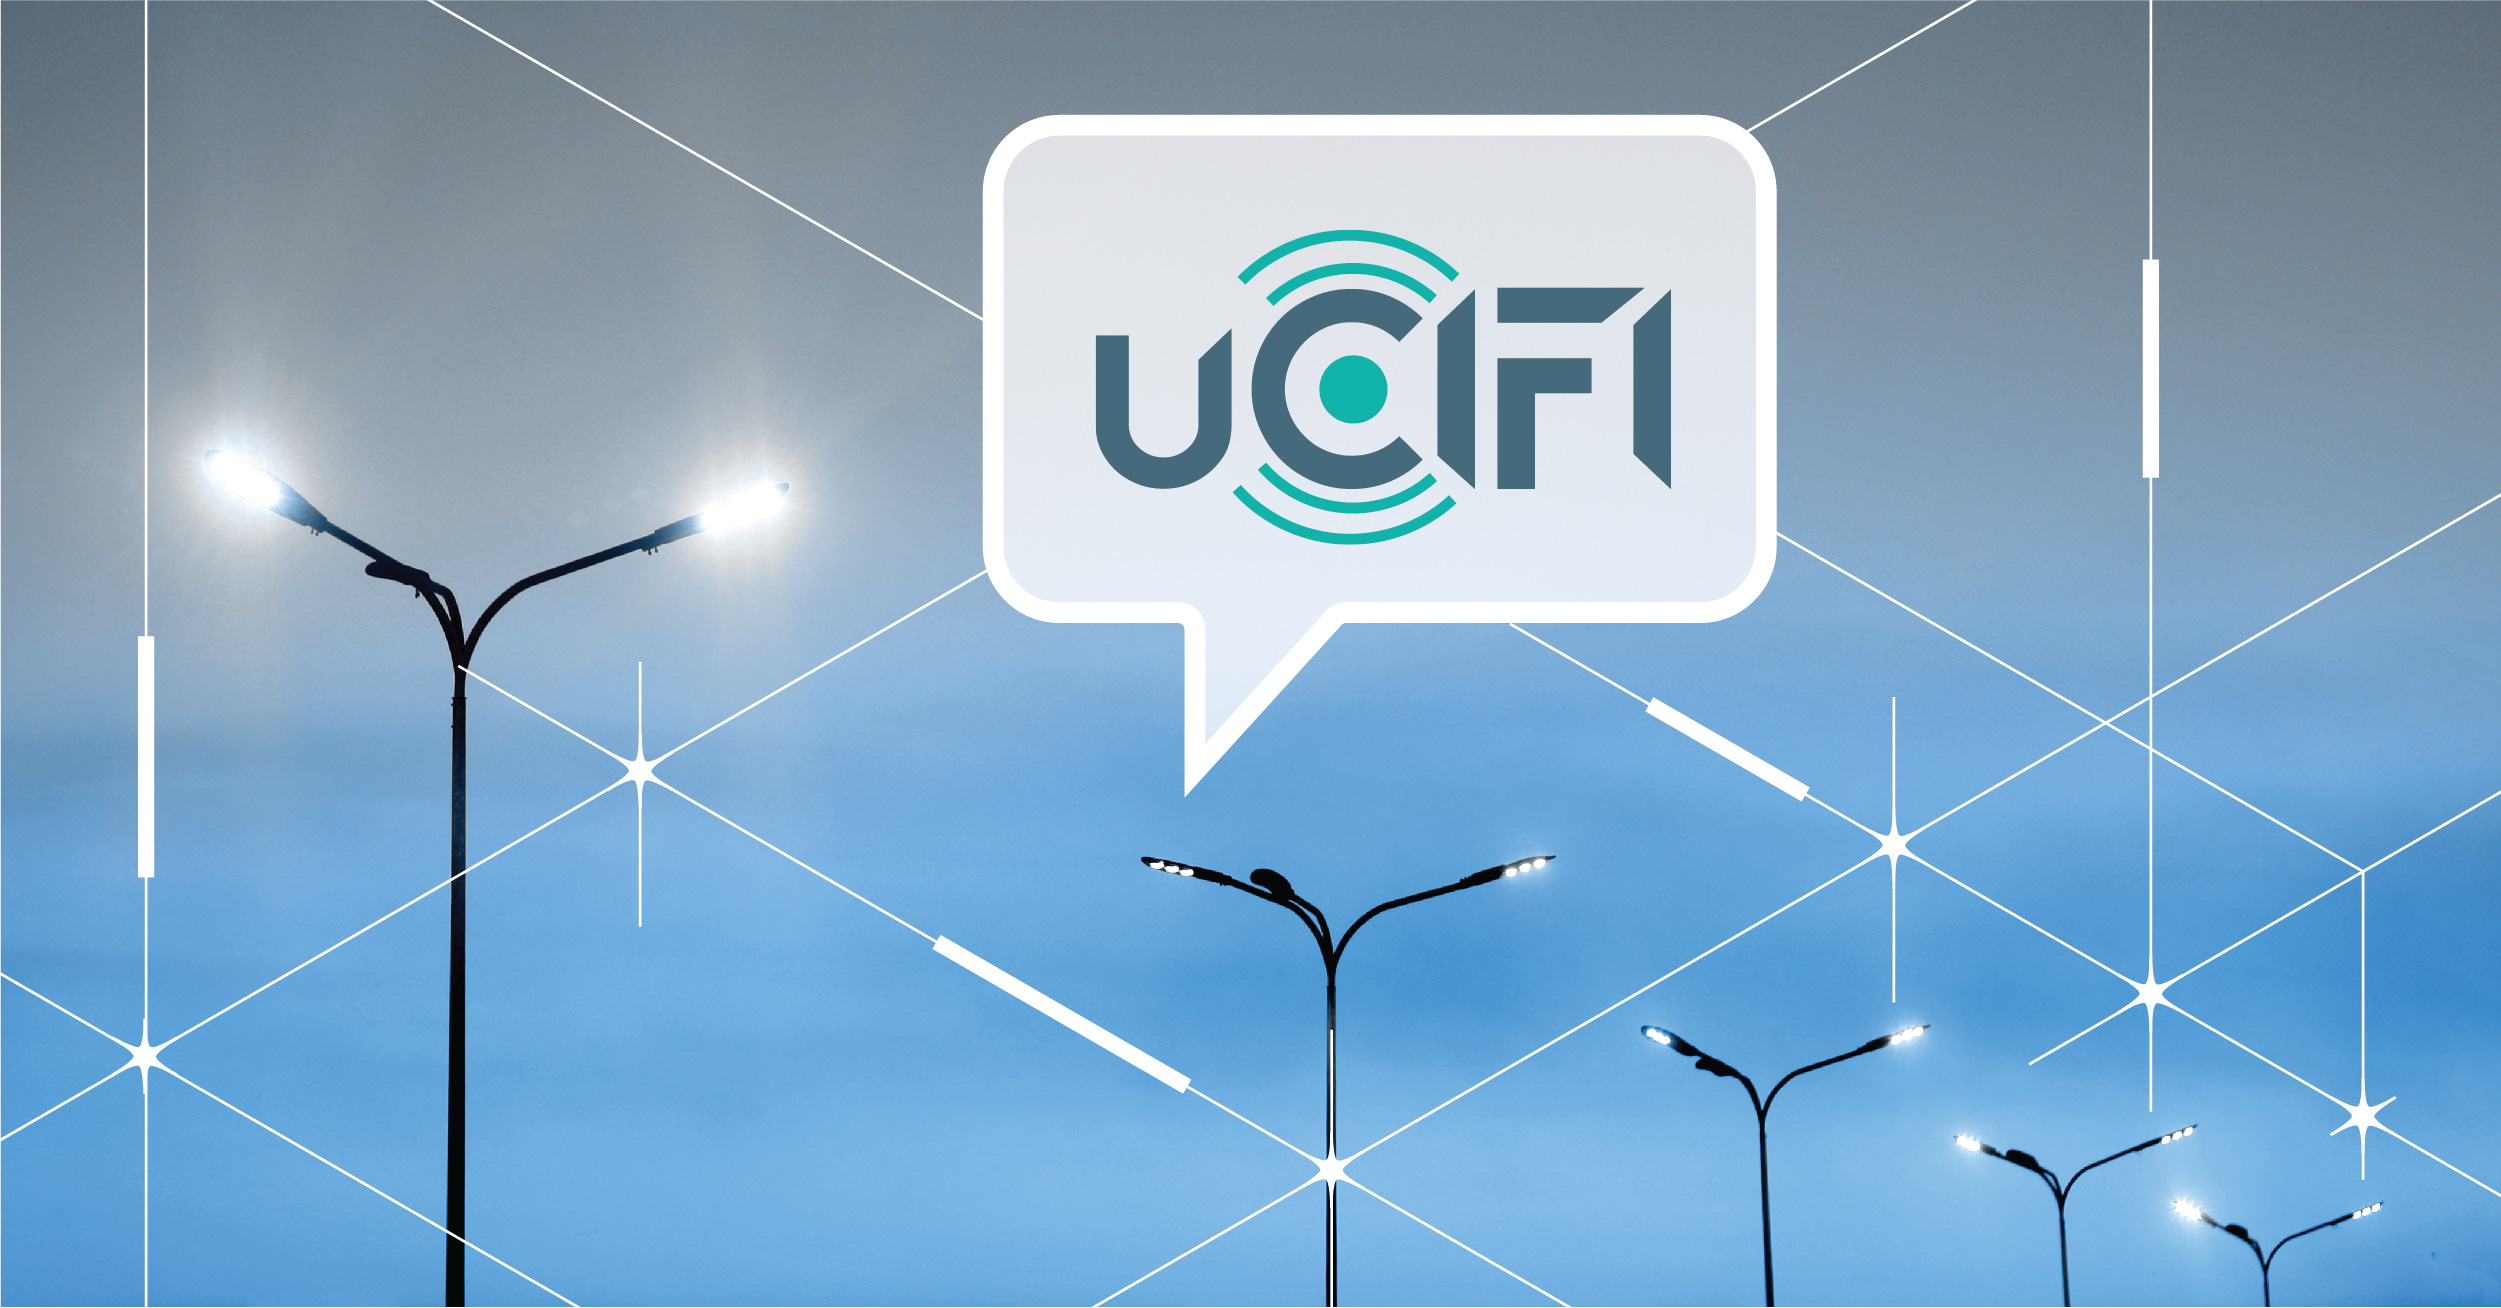 inteliLIGHT increases interoperability for its smart street lighting solution with uCIFI data model compatibility